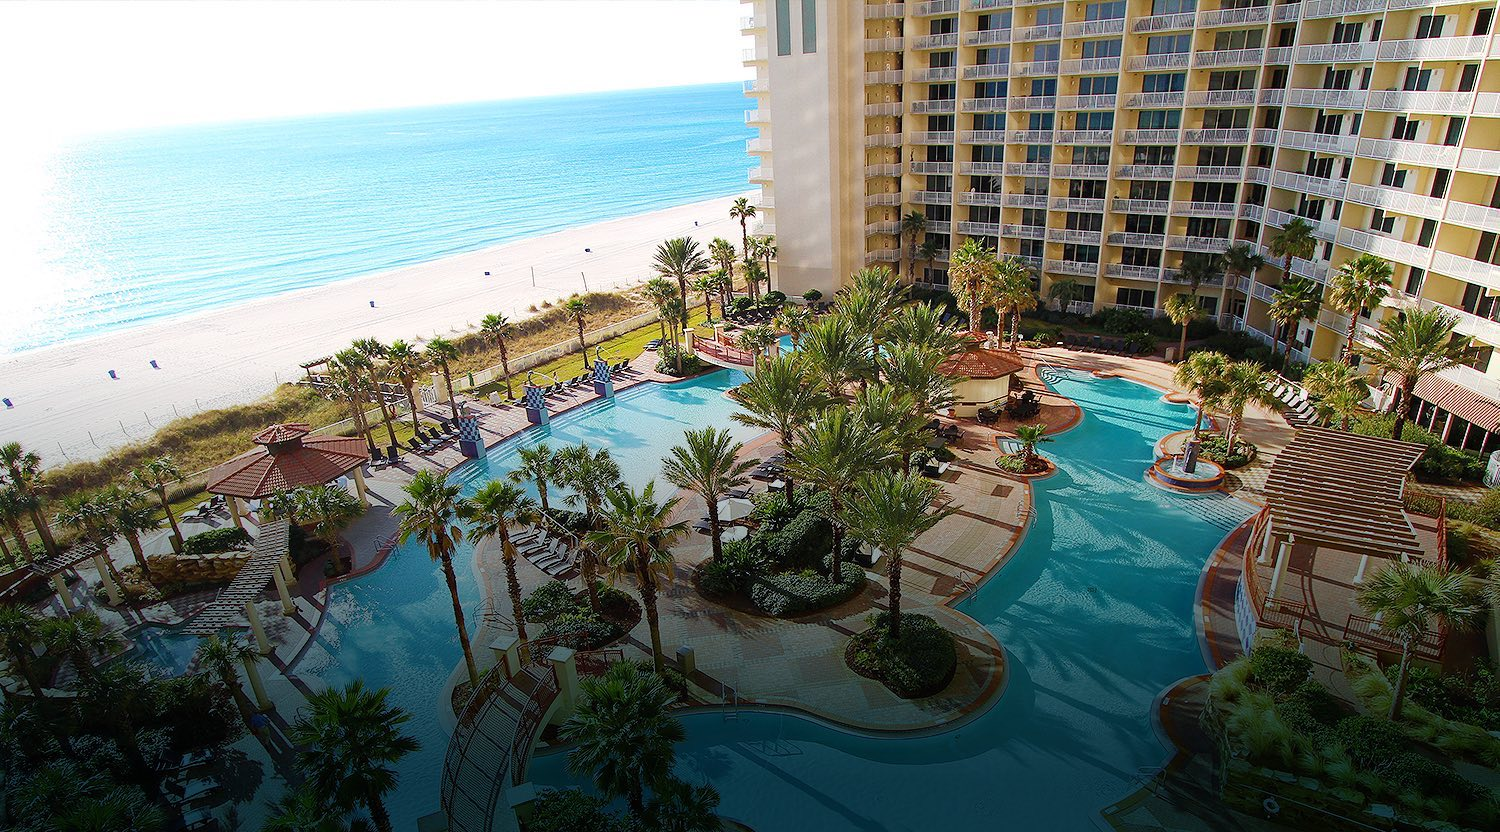 Beachfront Hotels in Panama City Beach  Shores of Panama